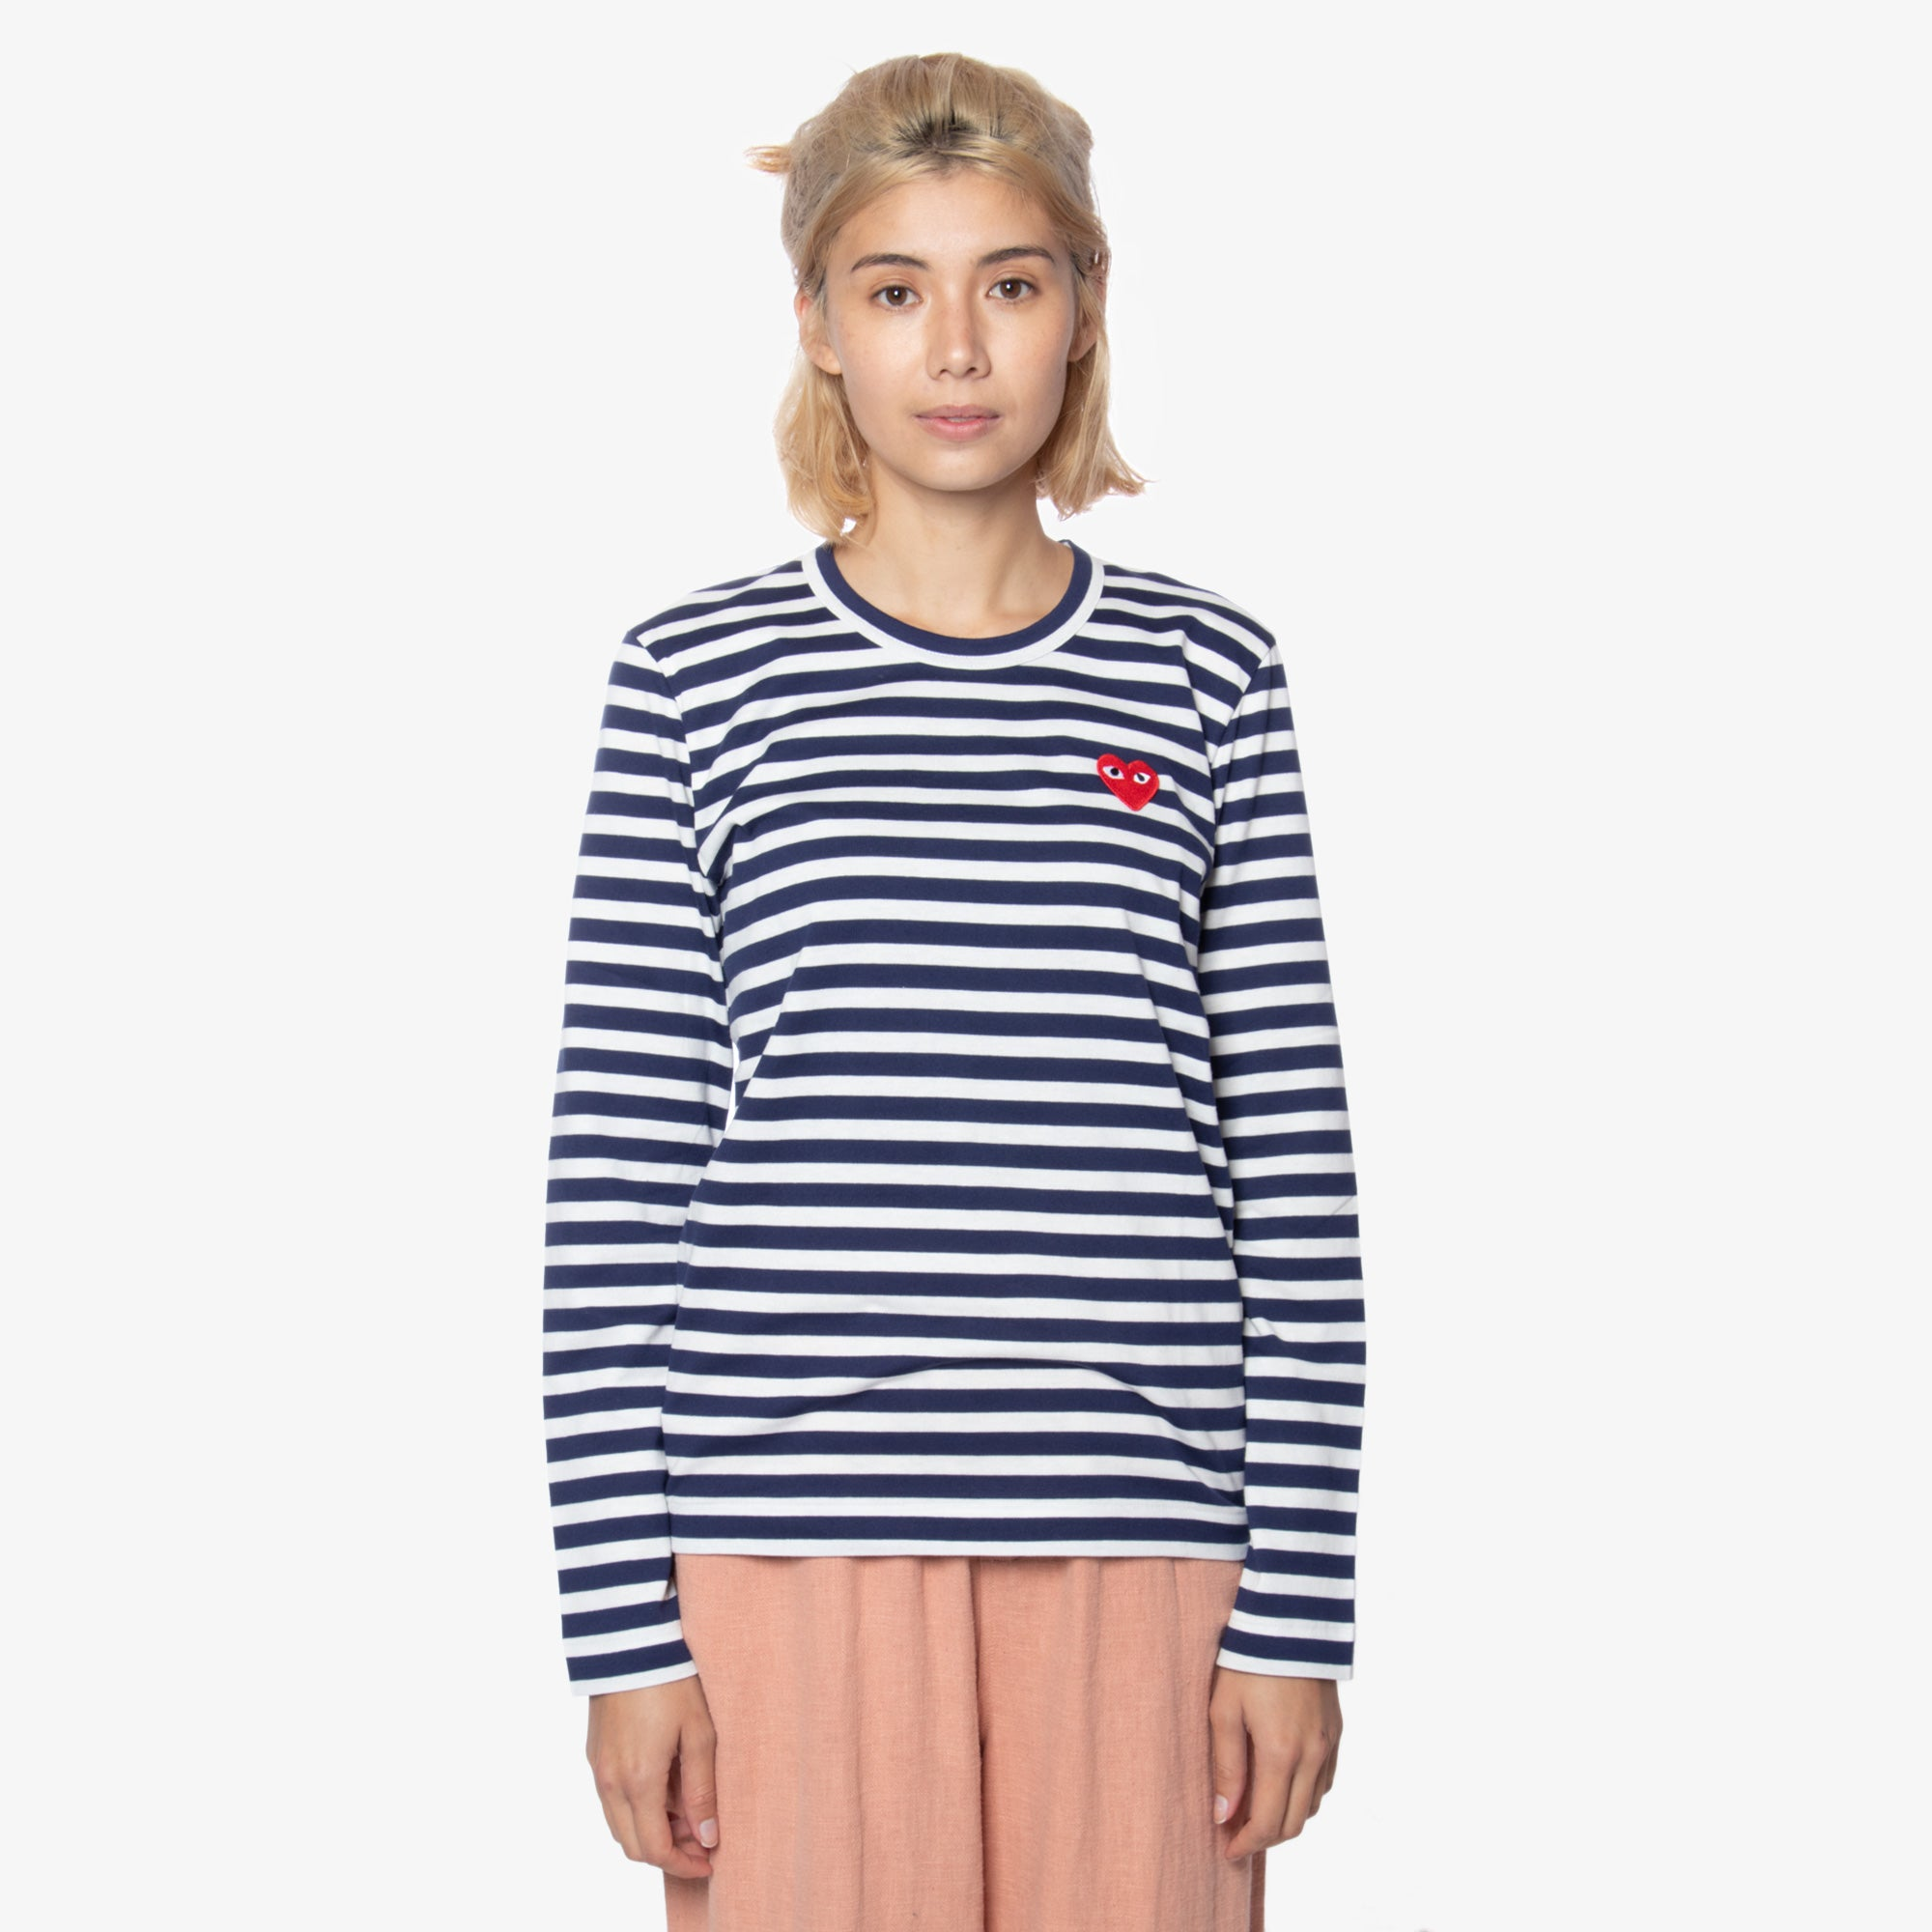 Comme des Garçons - PLAY L/S Stripe Red Heart Emblem Womens Tee - Navy / White 1